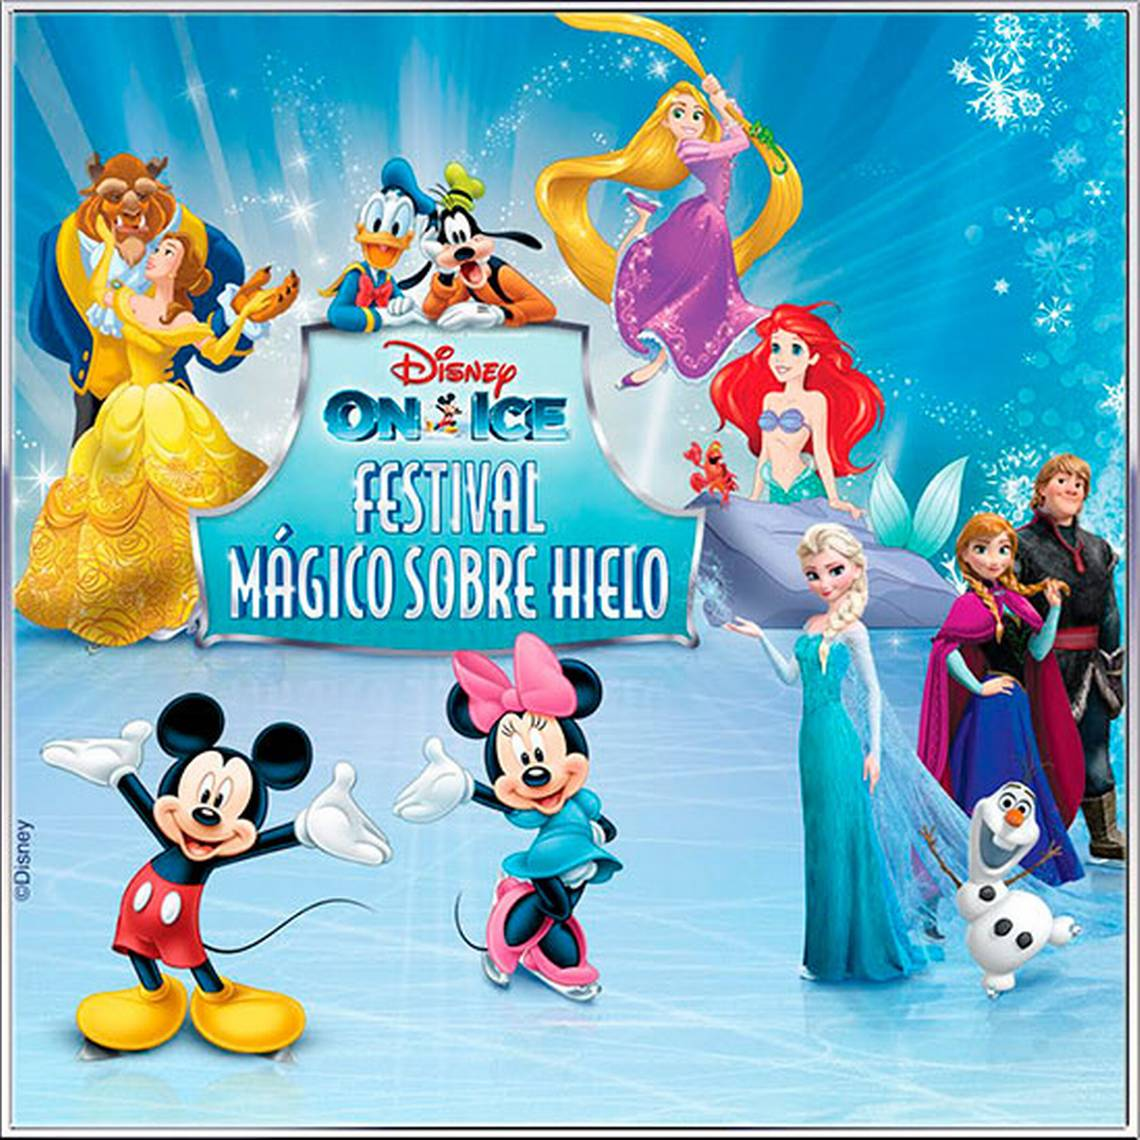 Disney On Ice y el mágico mundo de Frozen llegan a Chile